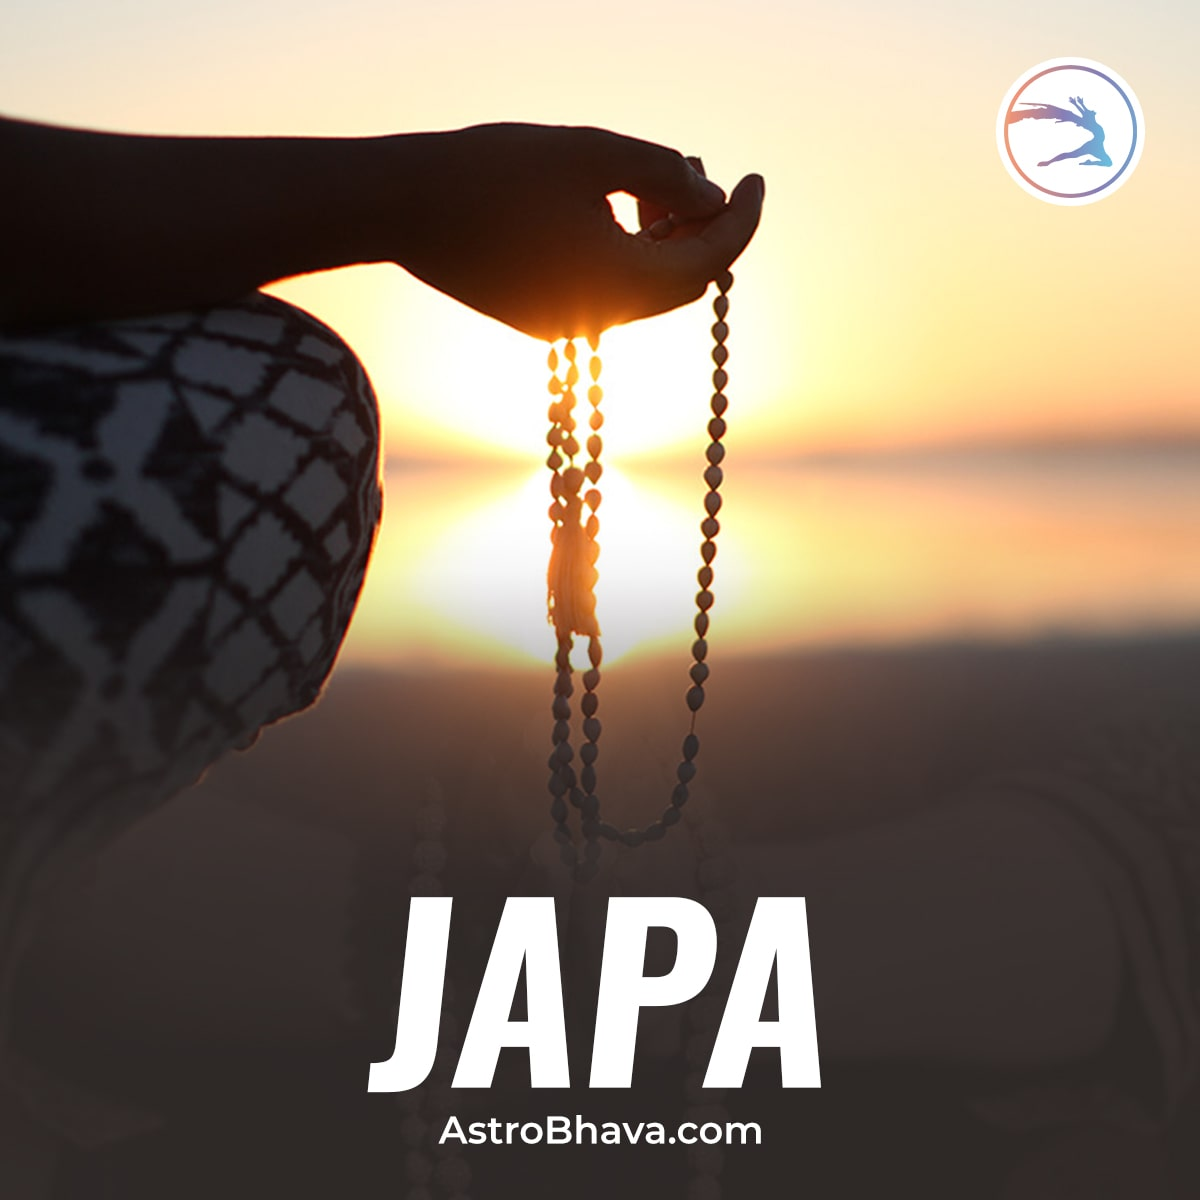 Japa: Chant All Negativities Out Through AstroBhava's Ancient Indian Vedic Services